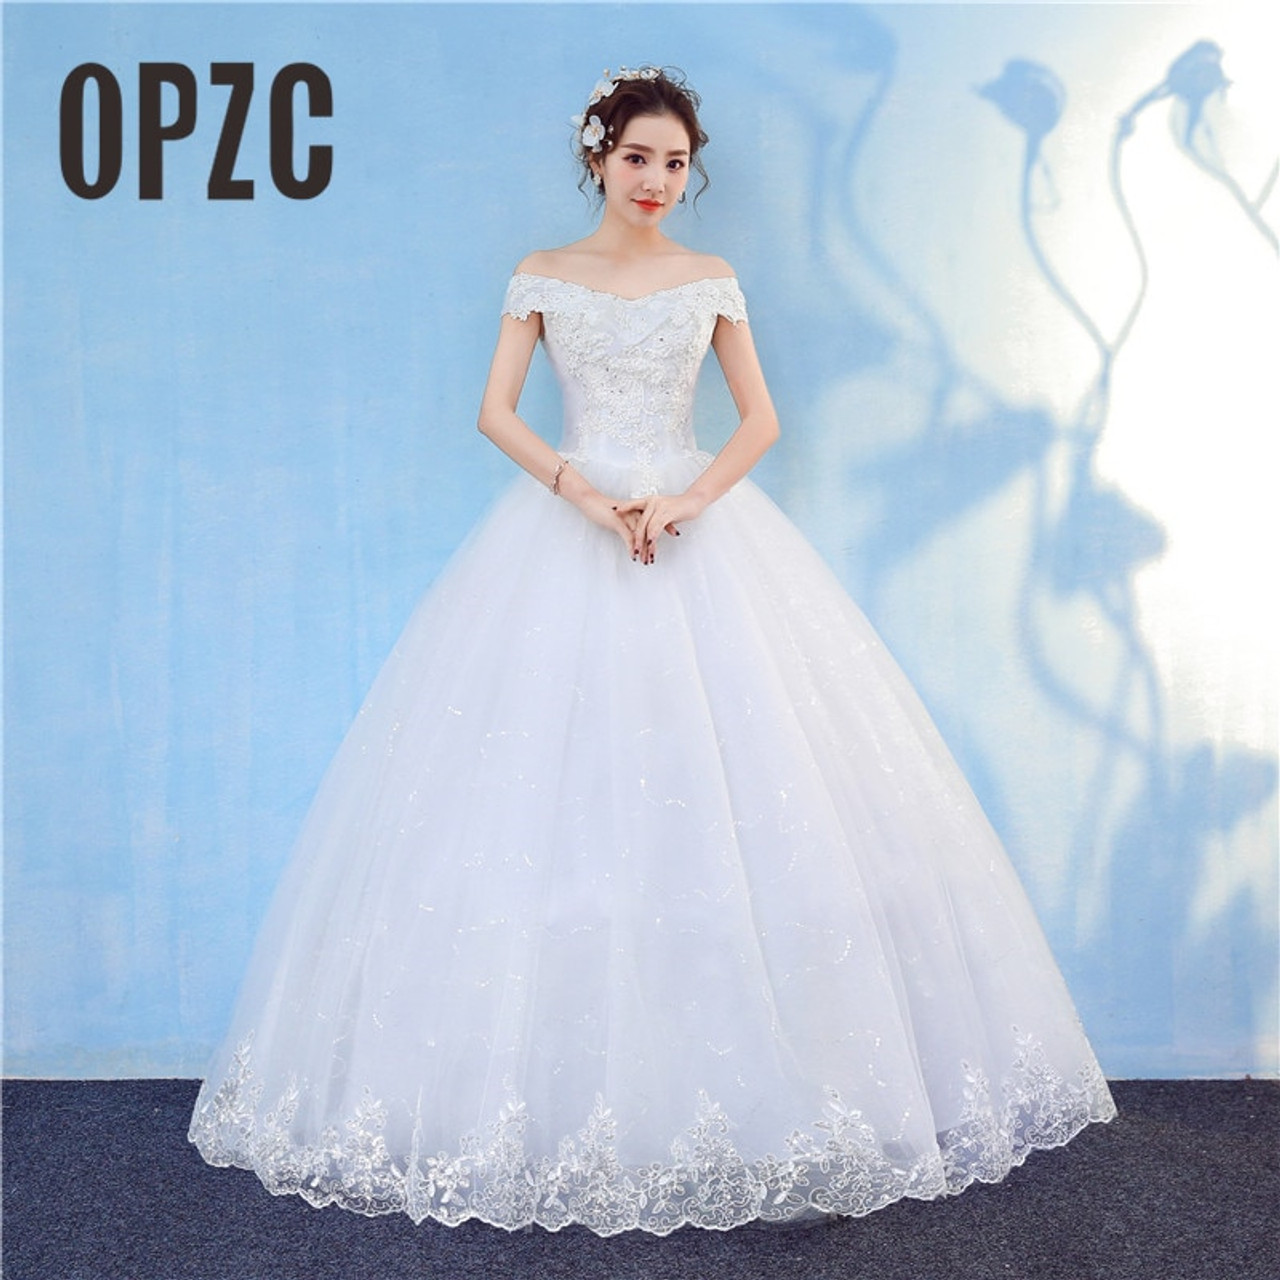 795b247a843c New Arrival 2018 Free Shipping Vintage Elegant Lace White Wedding Dresses  Boat Neck Plus Size Ball ...